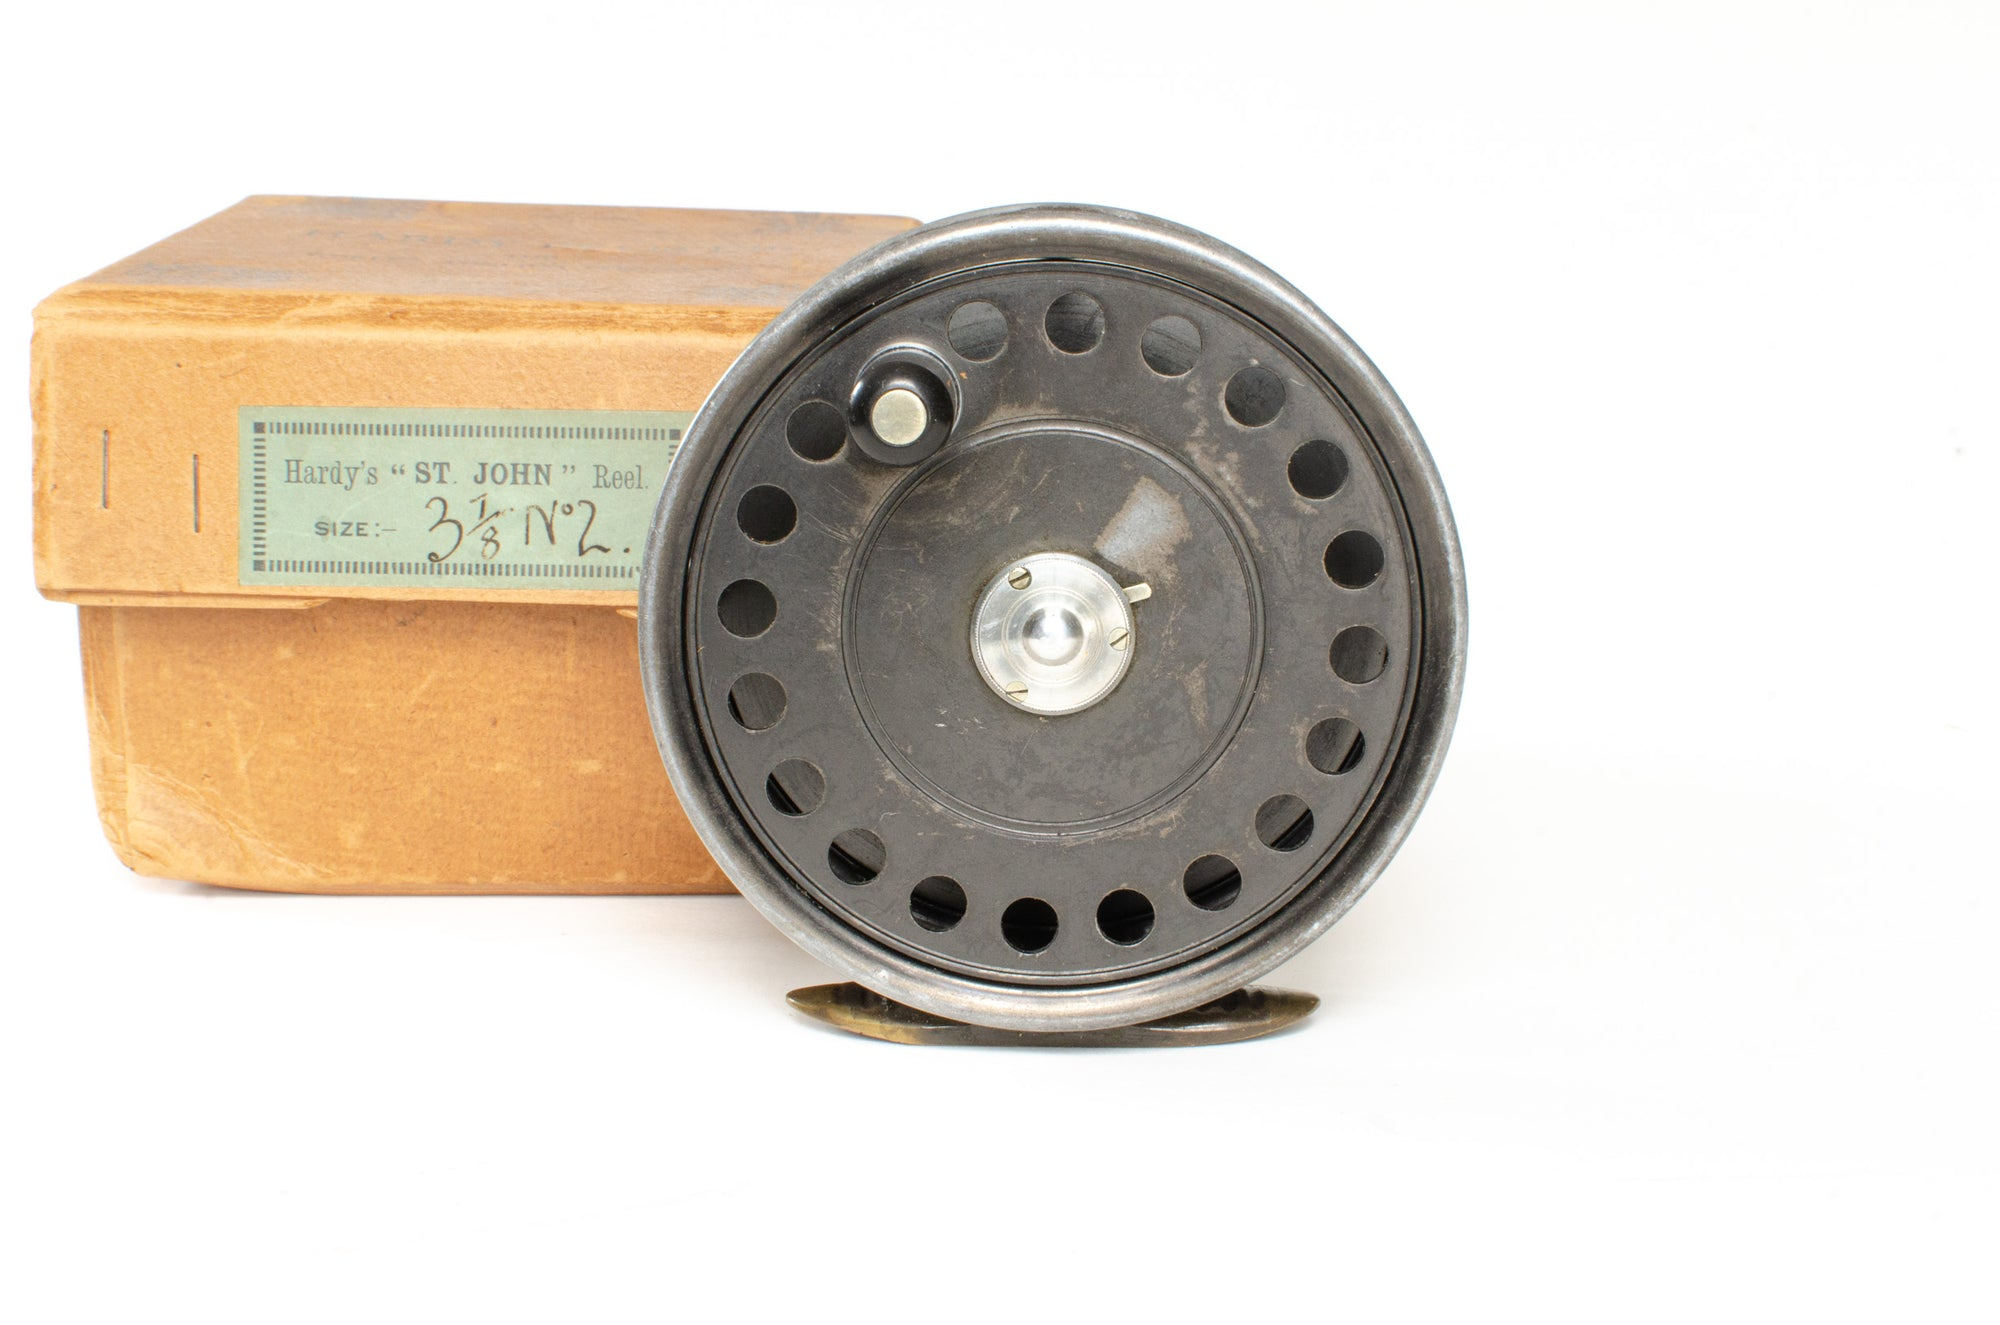 "Hardy St John Fly Reel 3 7/8"" No. 2"